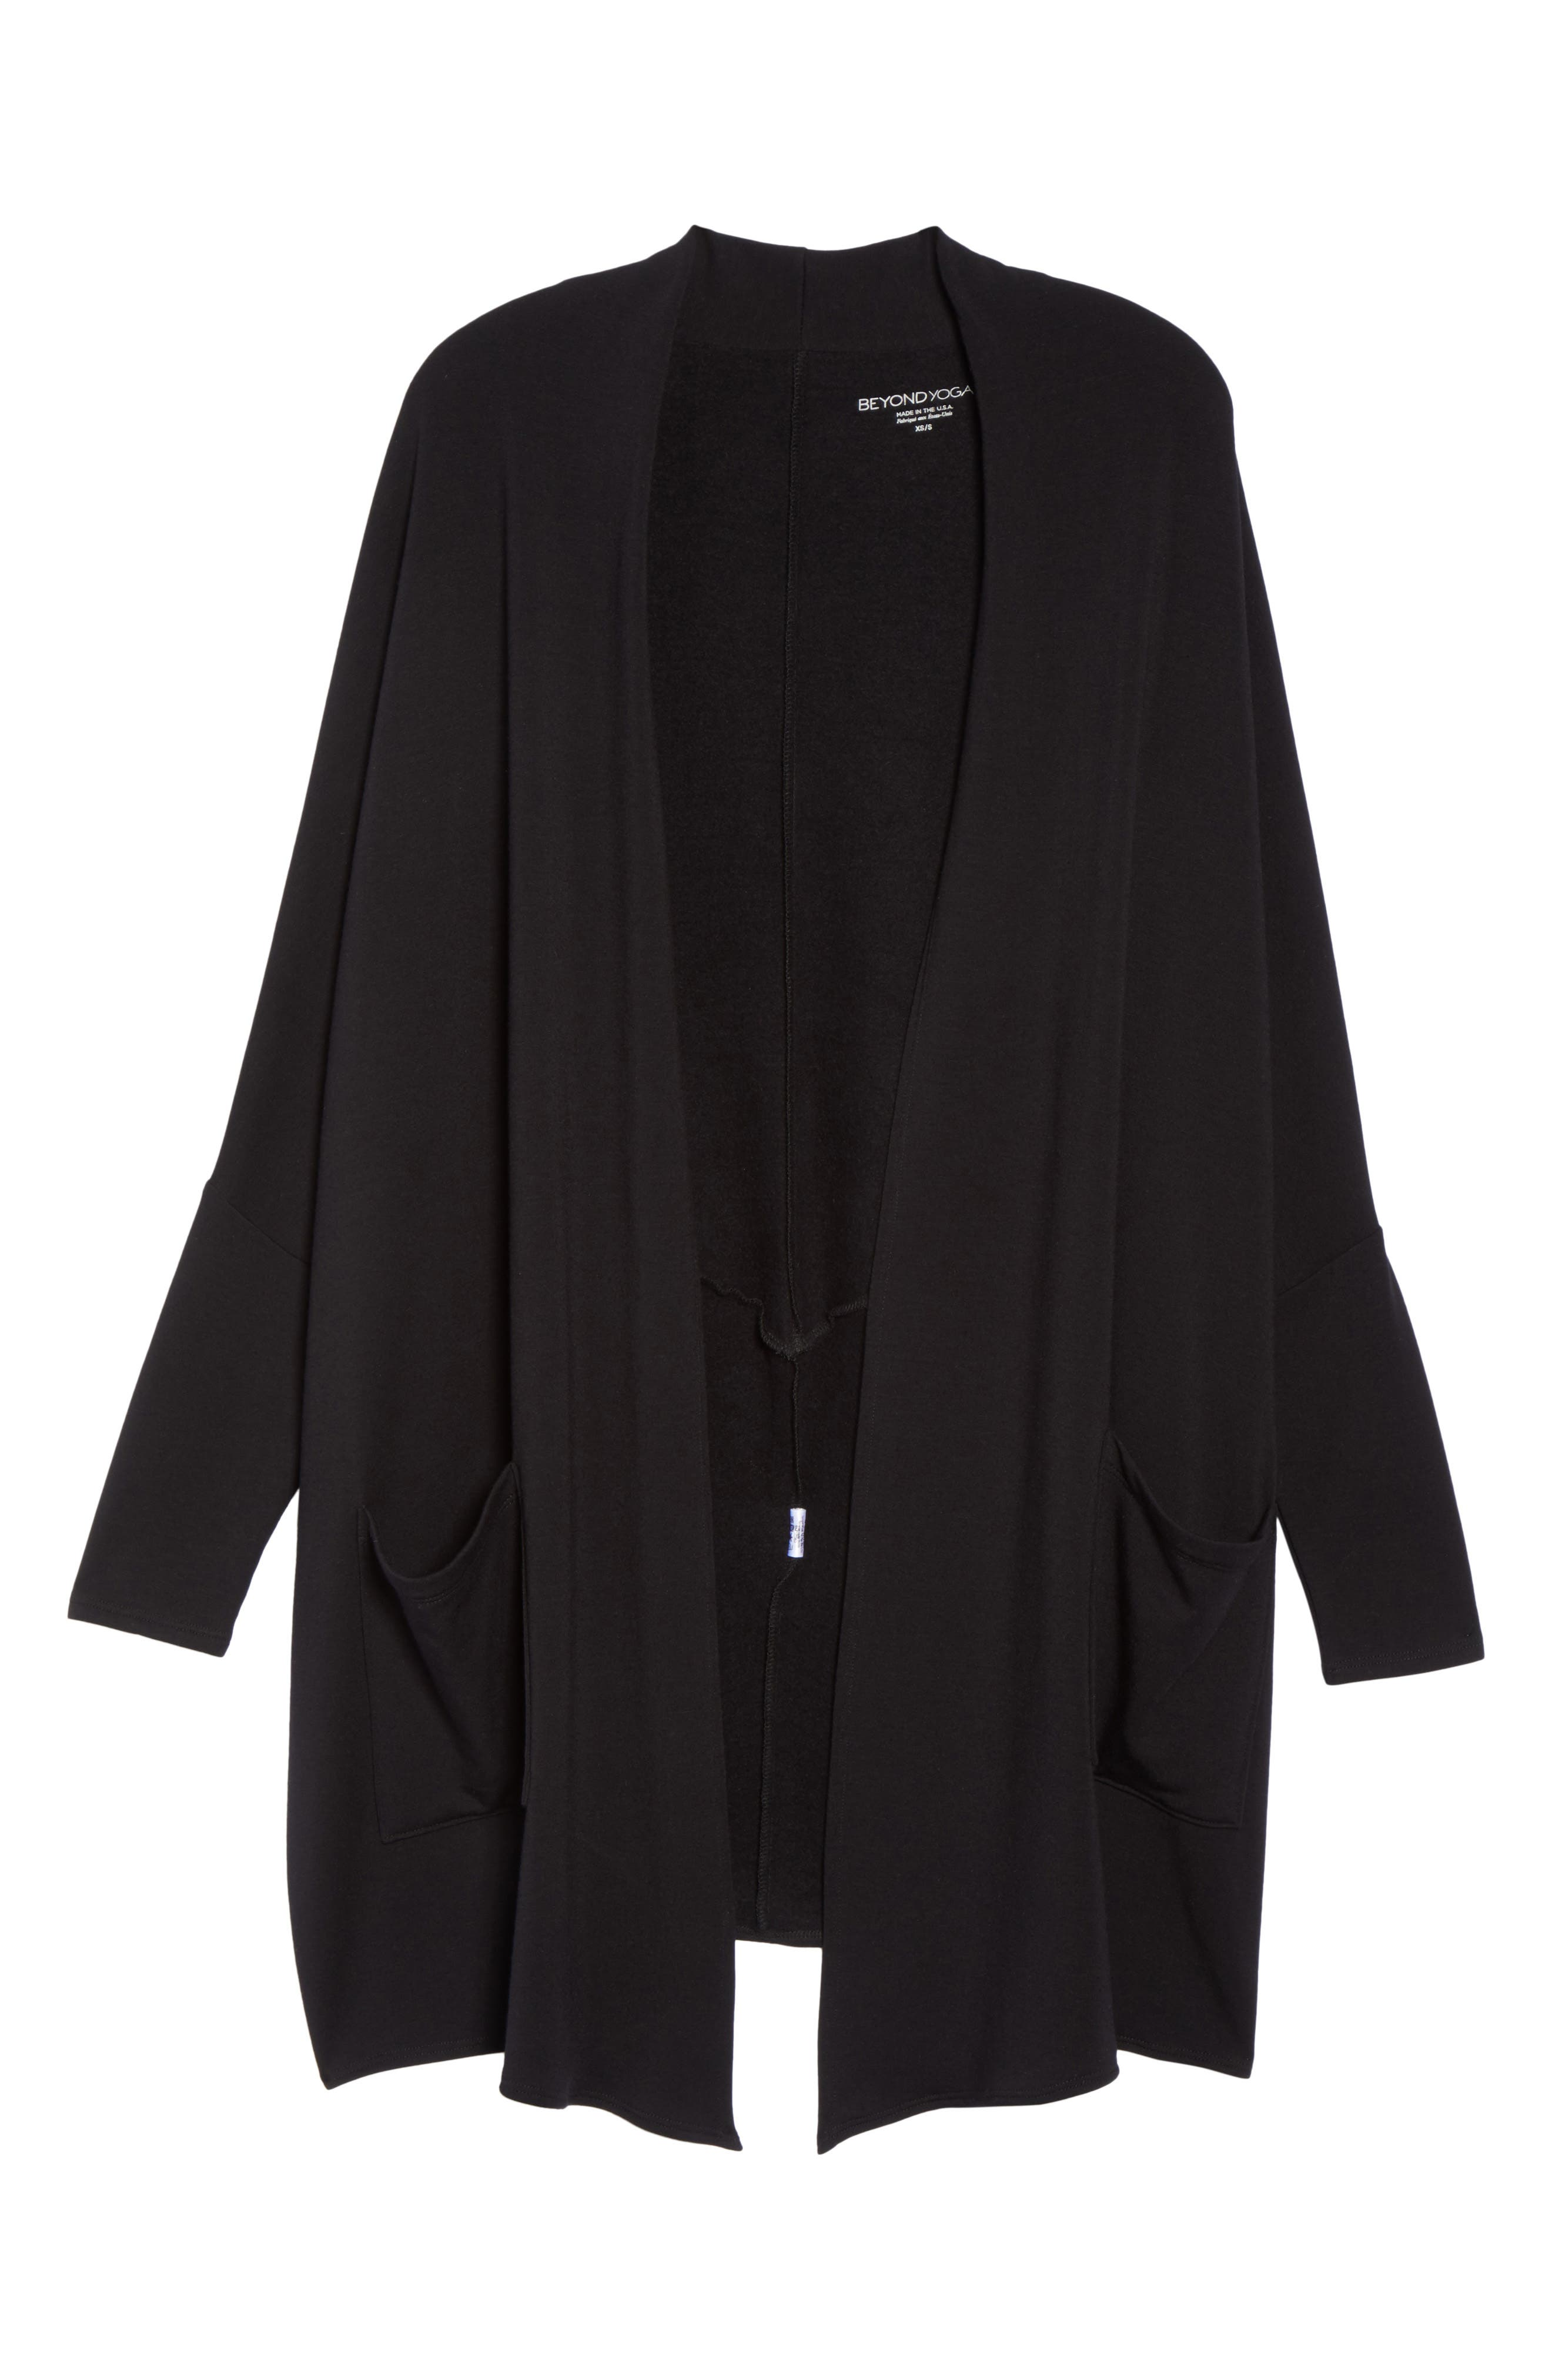 Easy Rider Origami Cardigan,                             Alternate thumbnail 7, color,                             Black